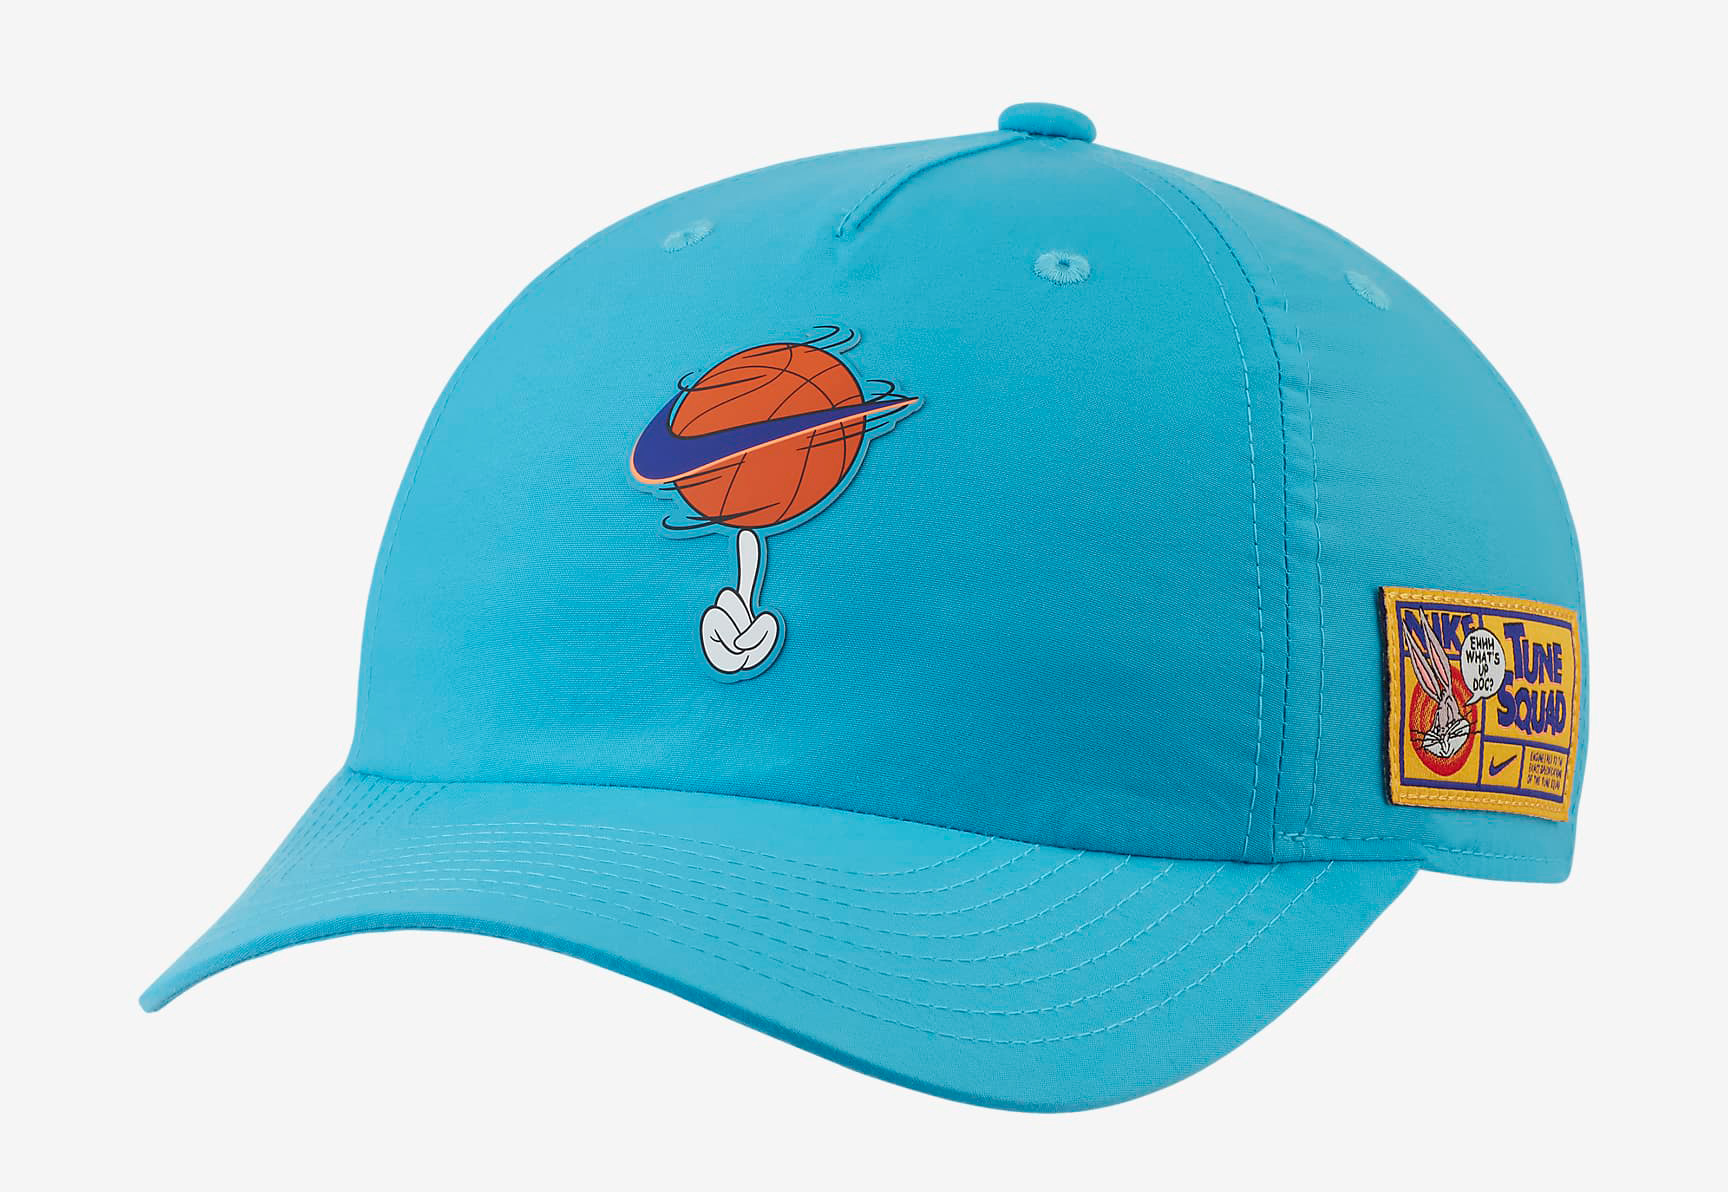 nike-space-jam-a-new-legacy-h86-blue-hat-1